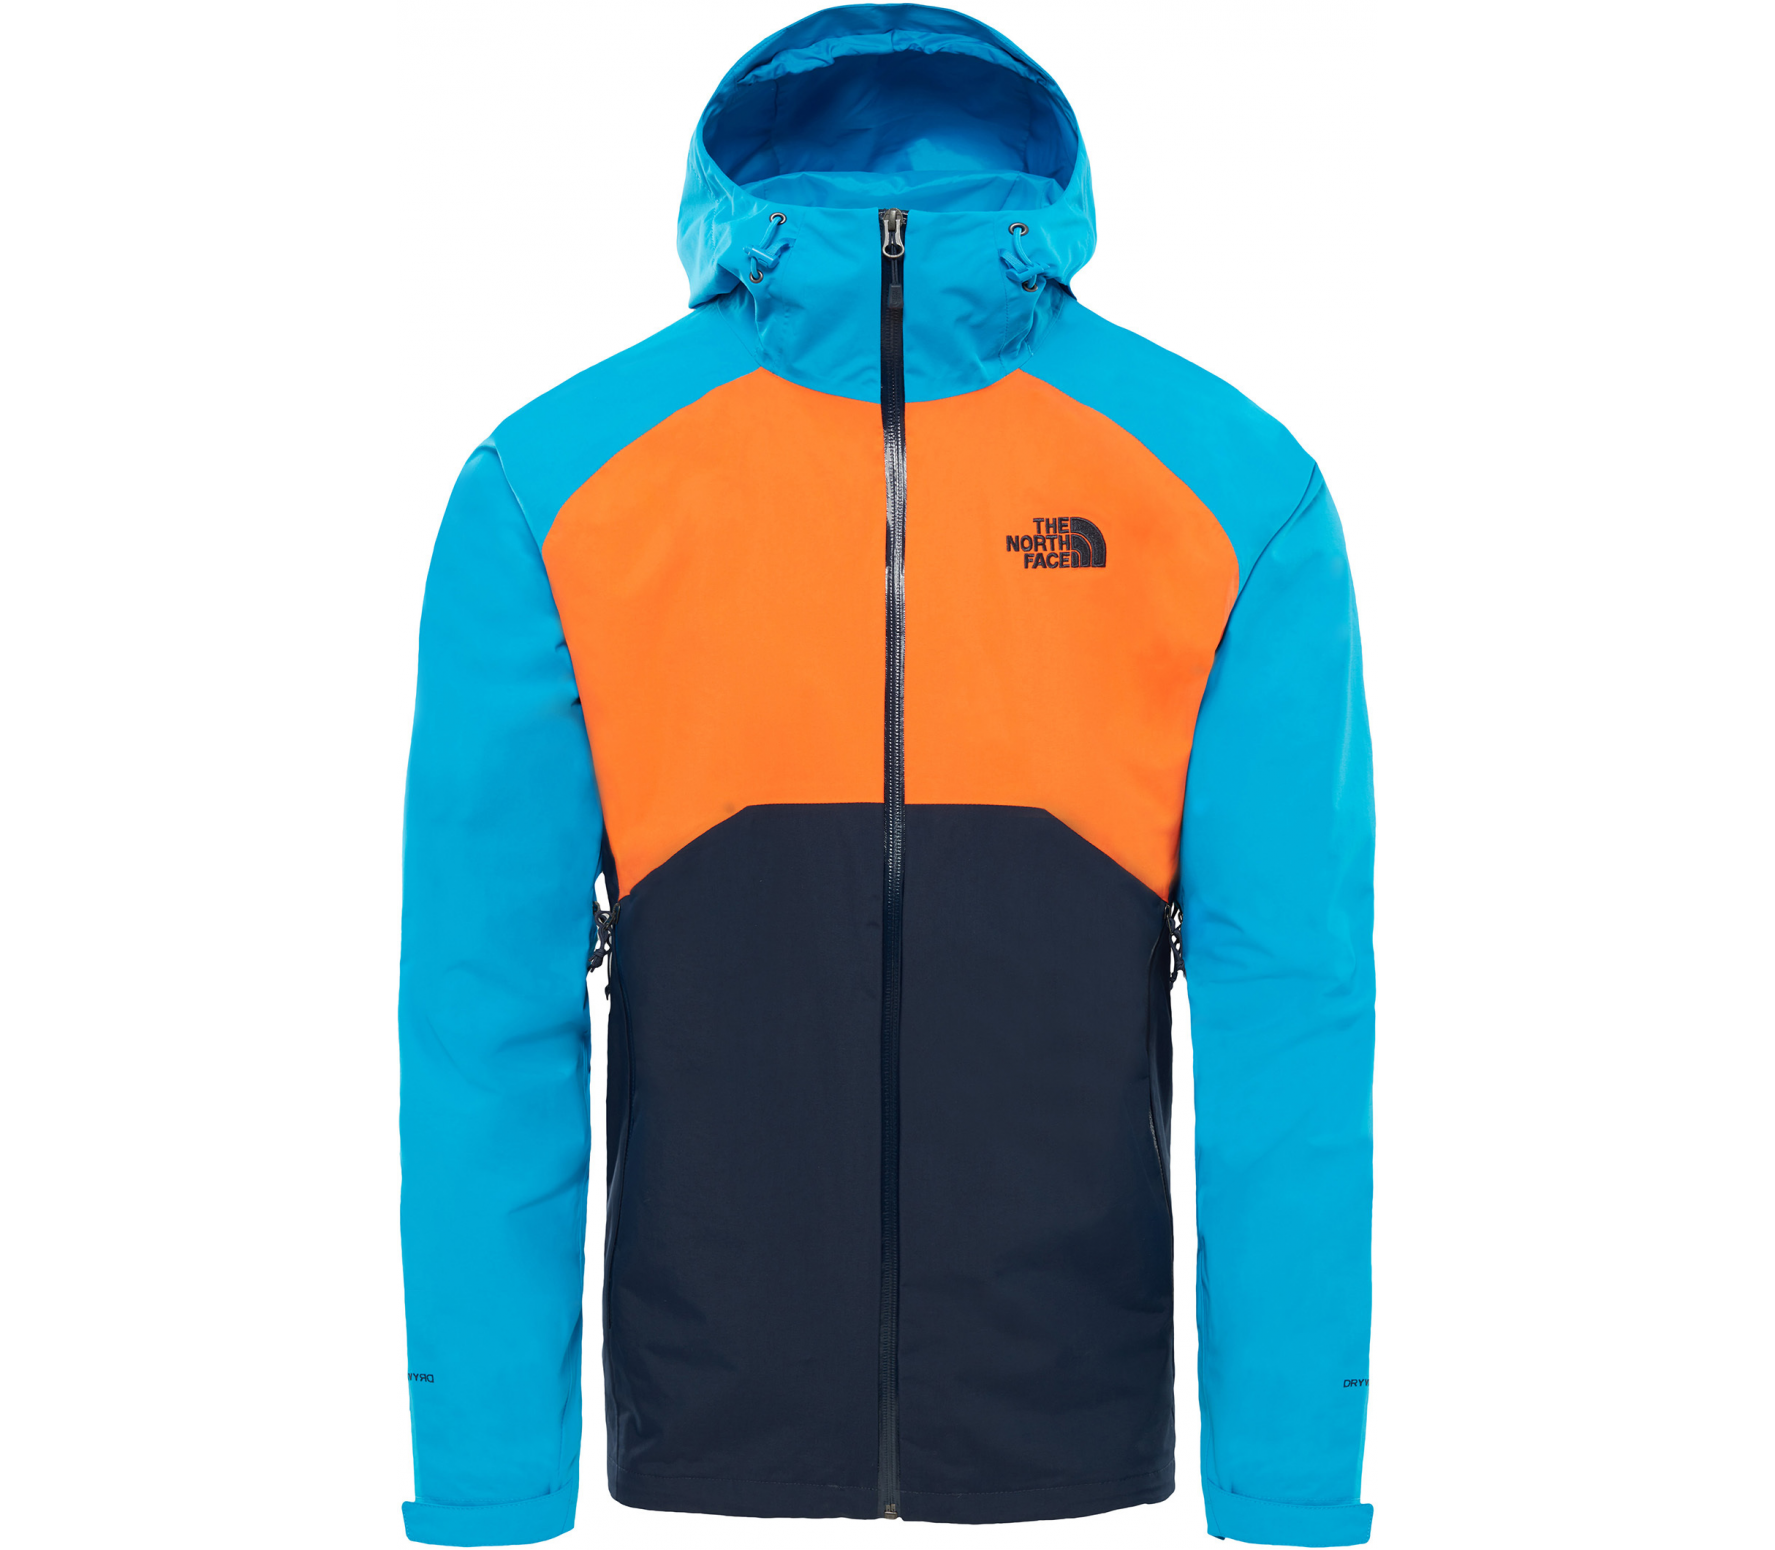 The North Face - Stratos Herren Funktionsjacke (blau/orange)